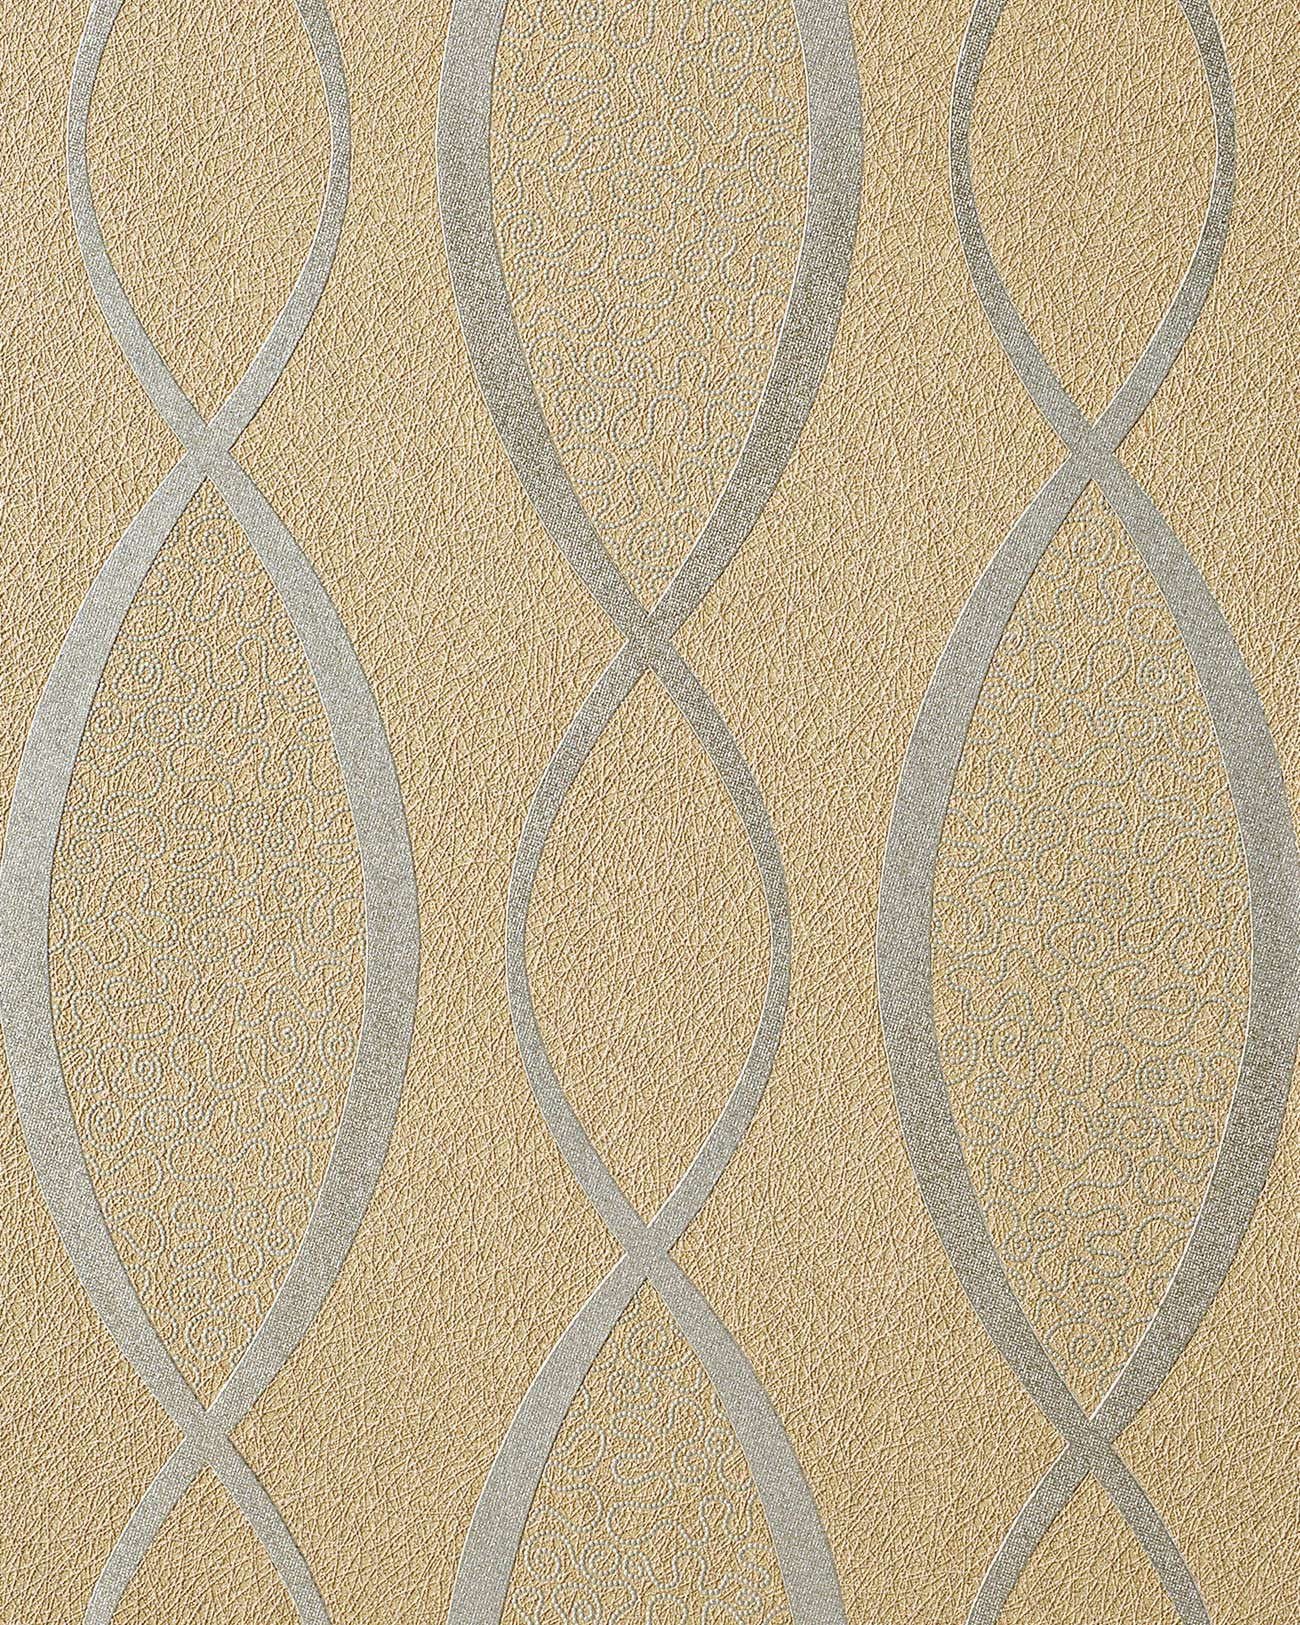 70s style textured vinyl wallcovering wallpaper fashion for Vinyl wallpaper for walls